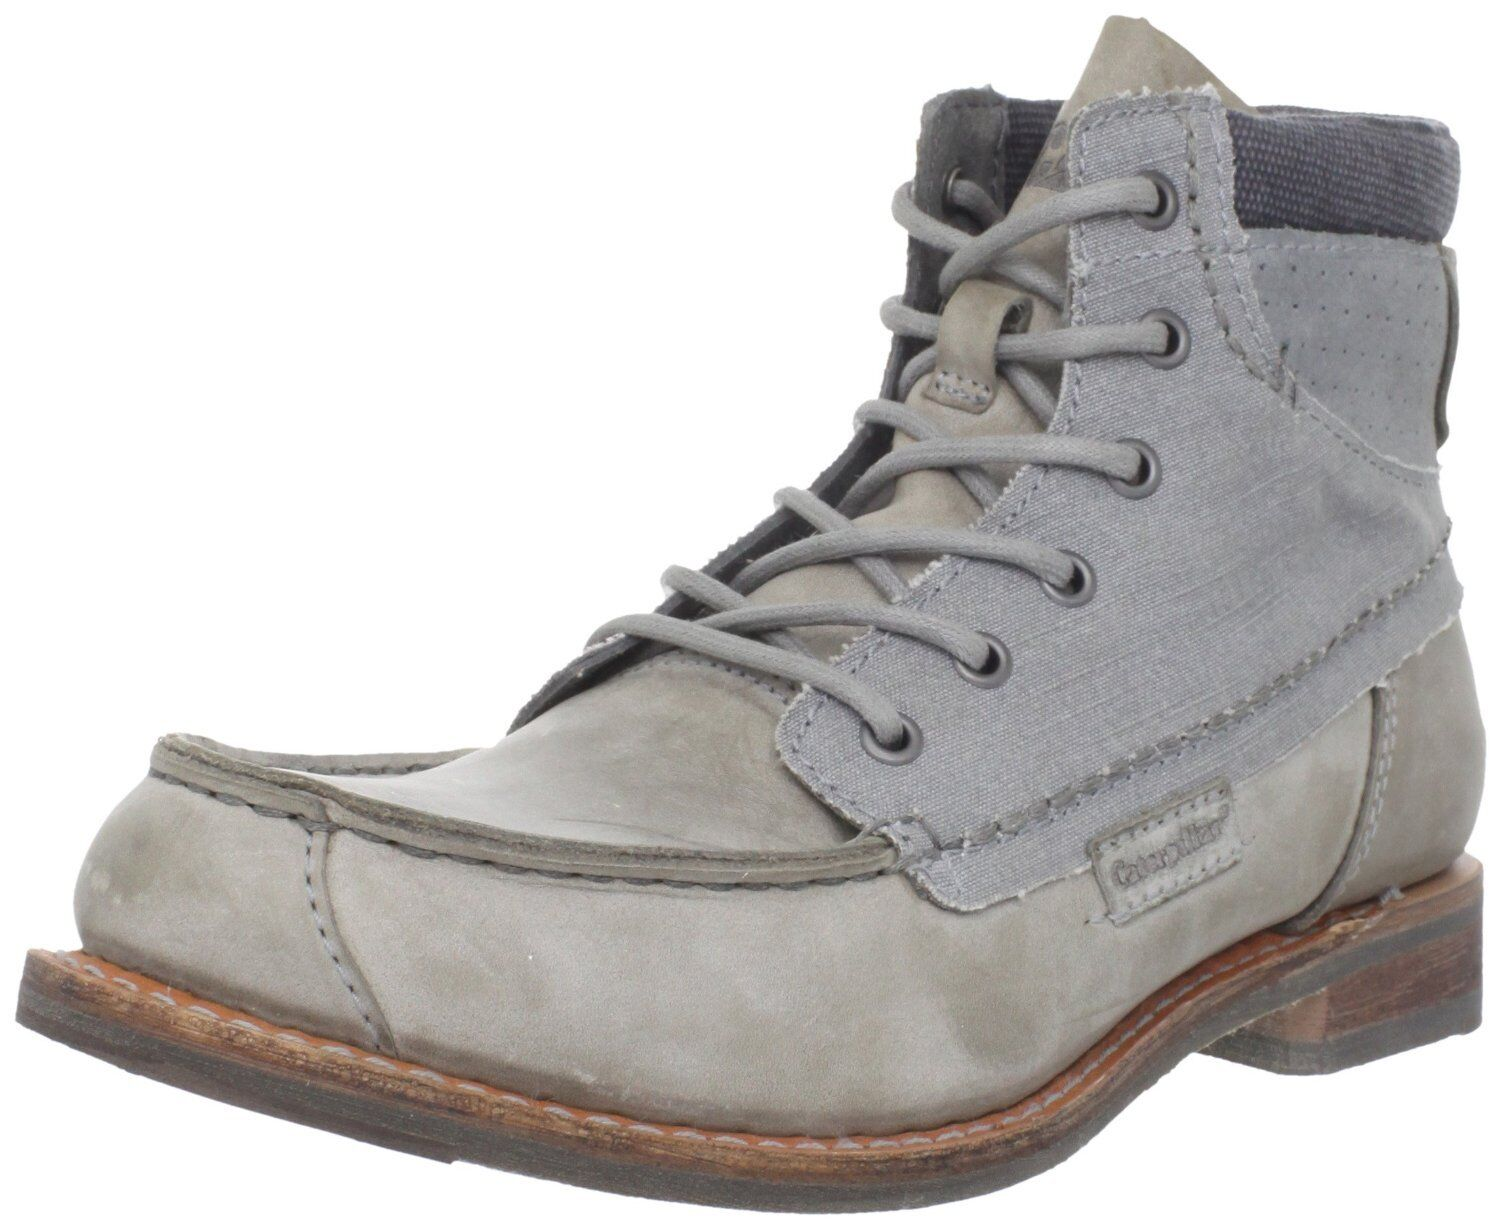 Caterpillar JAMES- Mens Casual Boots - Legendary RAW Collection - Light Charcoal